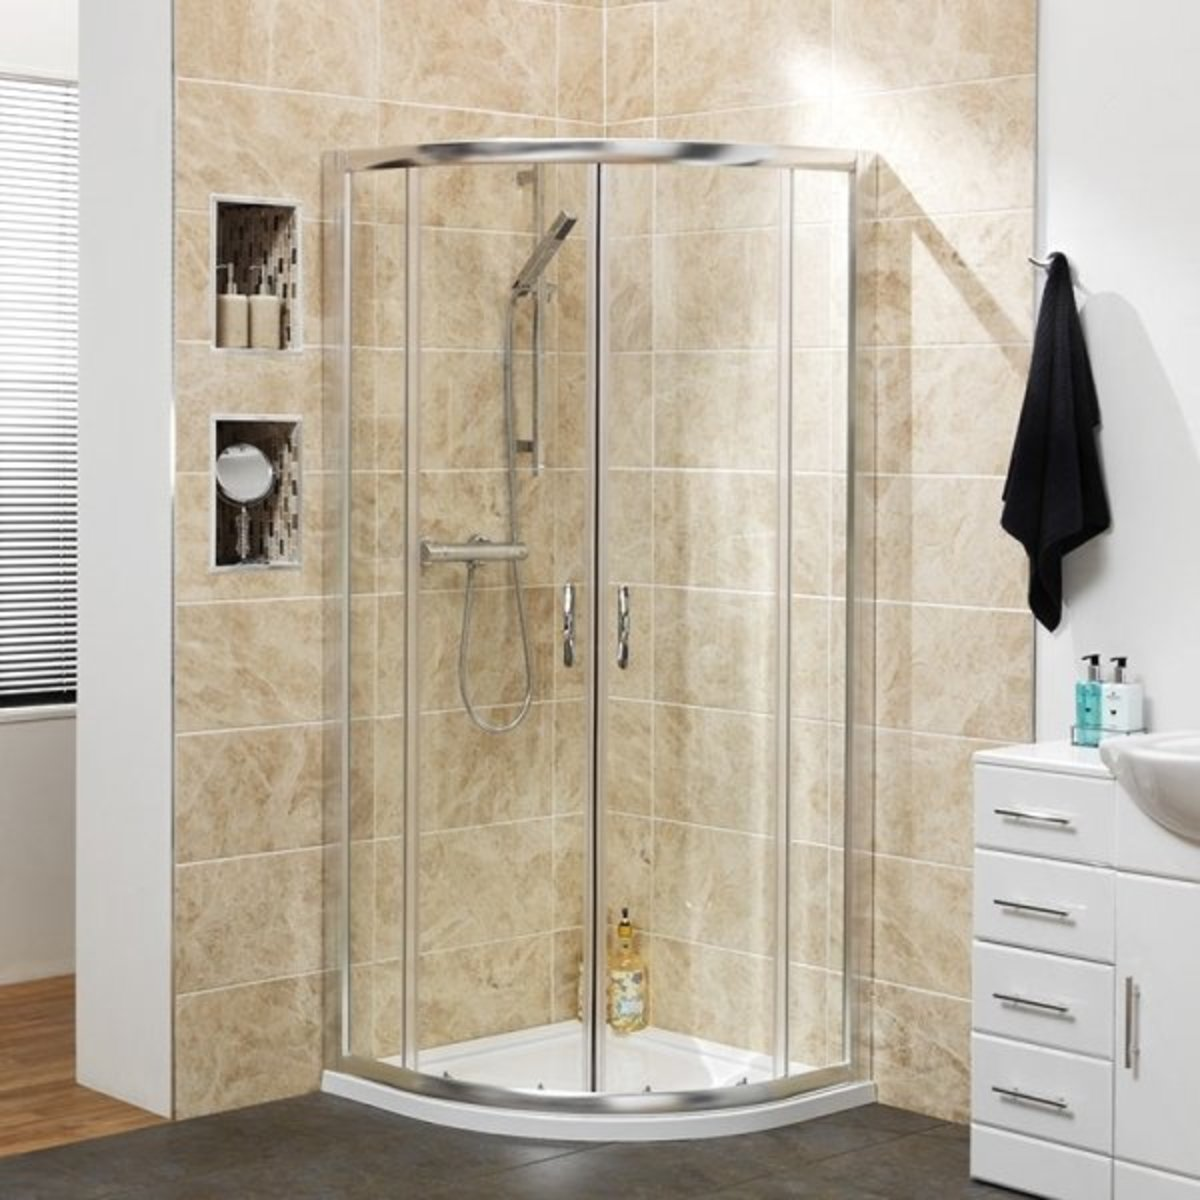 replace-a-bath-with-a-shower